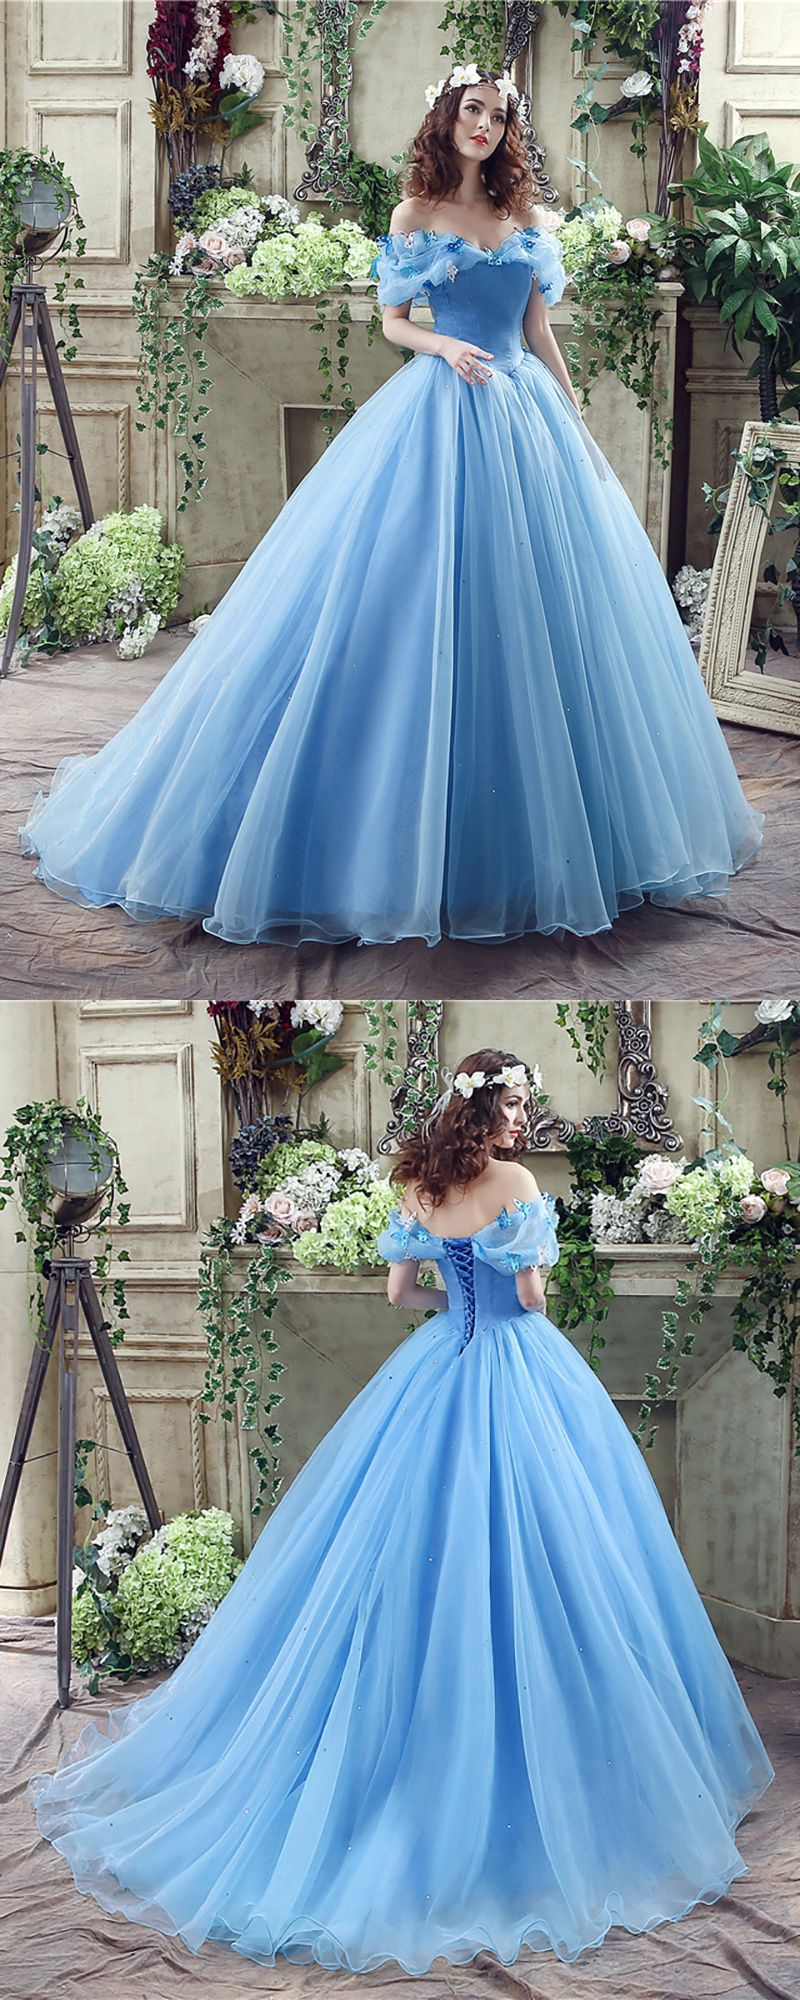 edeb2b241979 Only $114.99, Ball Gown Wedding Dresses Non Traditional Blue Cinderella  Princess Bridal Gowns With Off